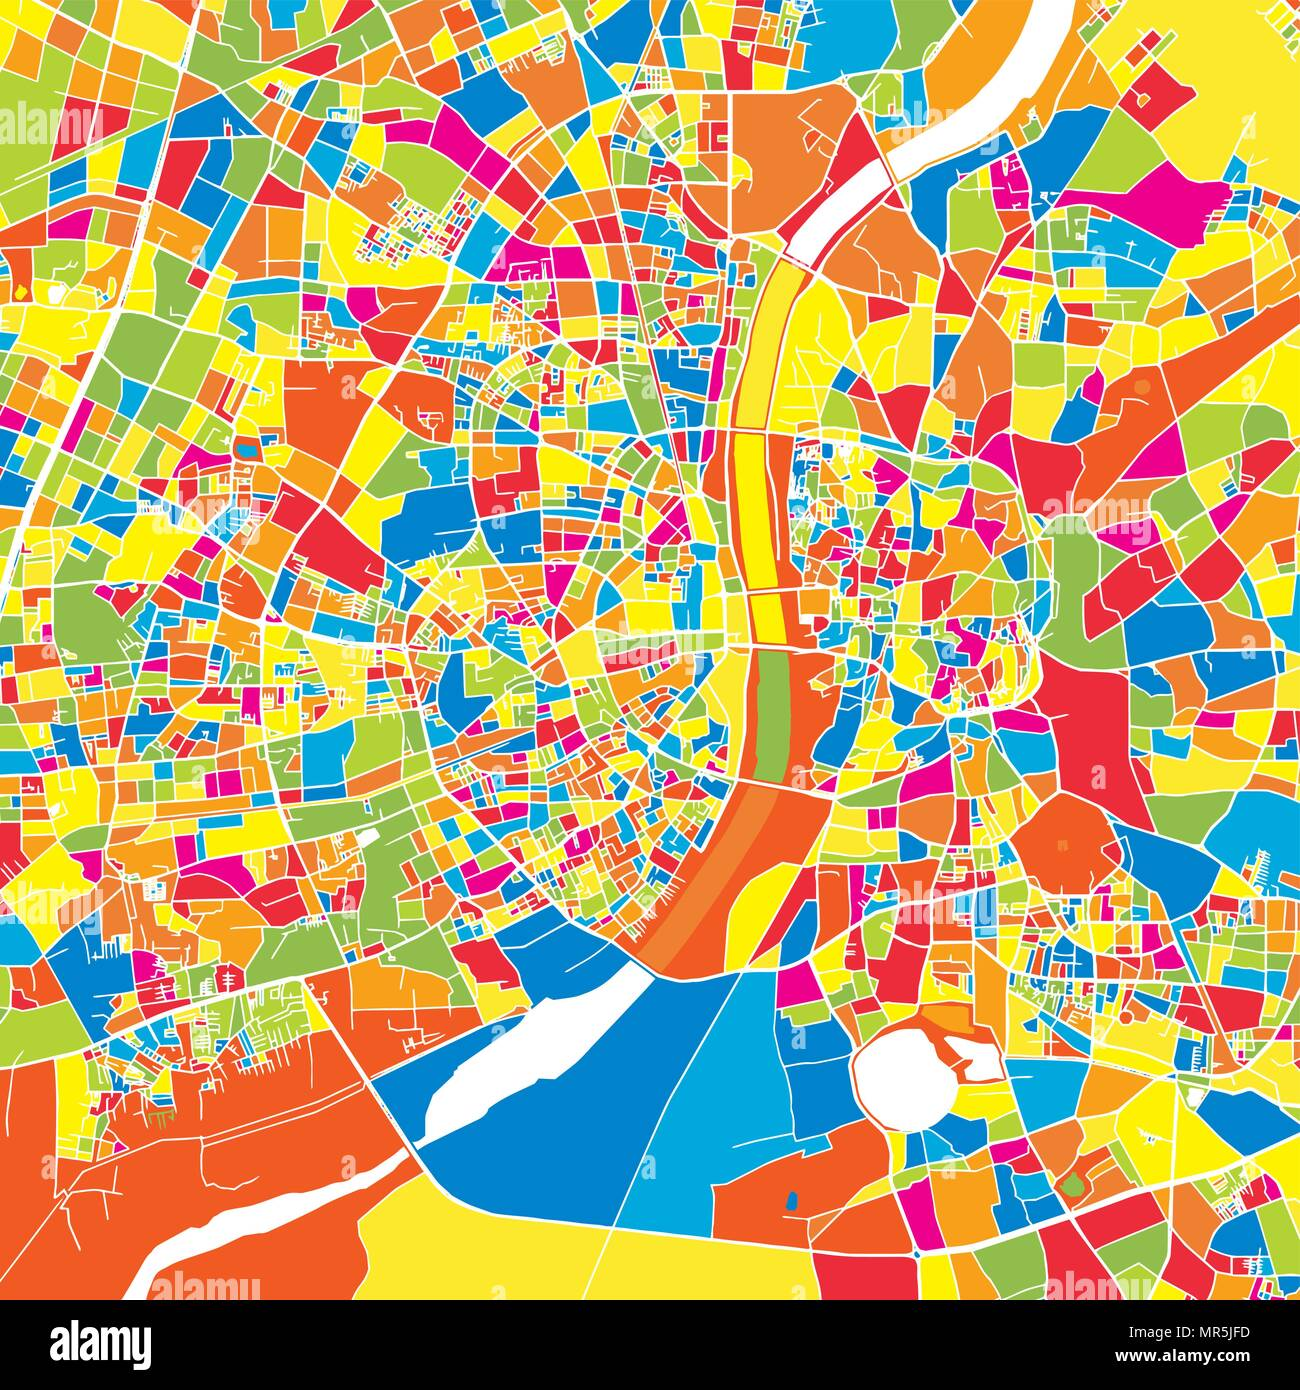 Ahmedabad, India, colorful vector map.  White streets, railways and water. Bright colored landmark shapes. Art print pattern. - Stock Vector